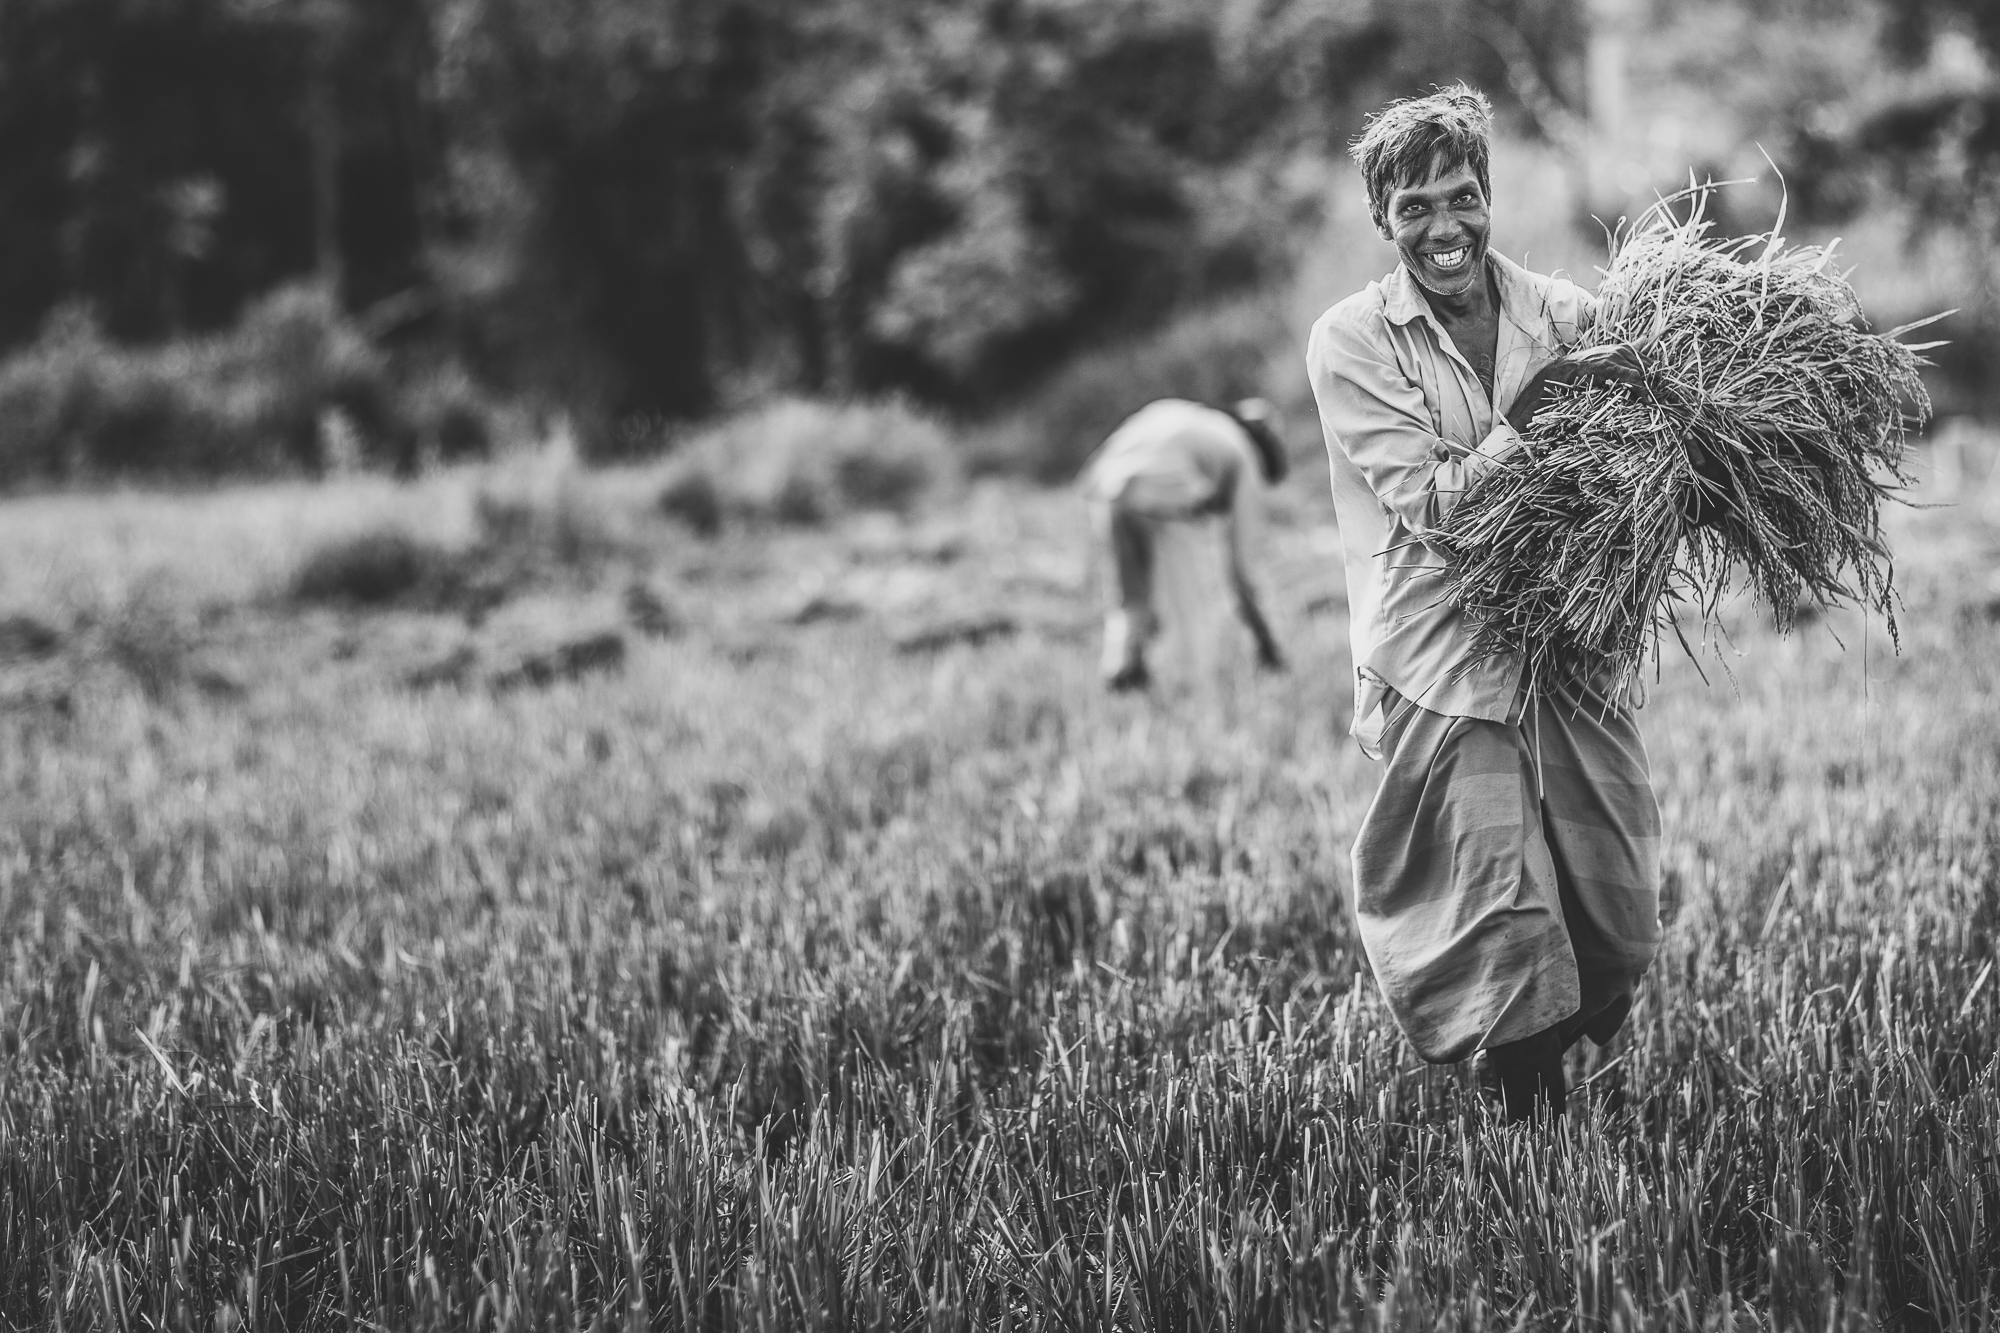 Black and White portrait of farmer bringing in his crop